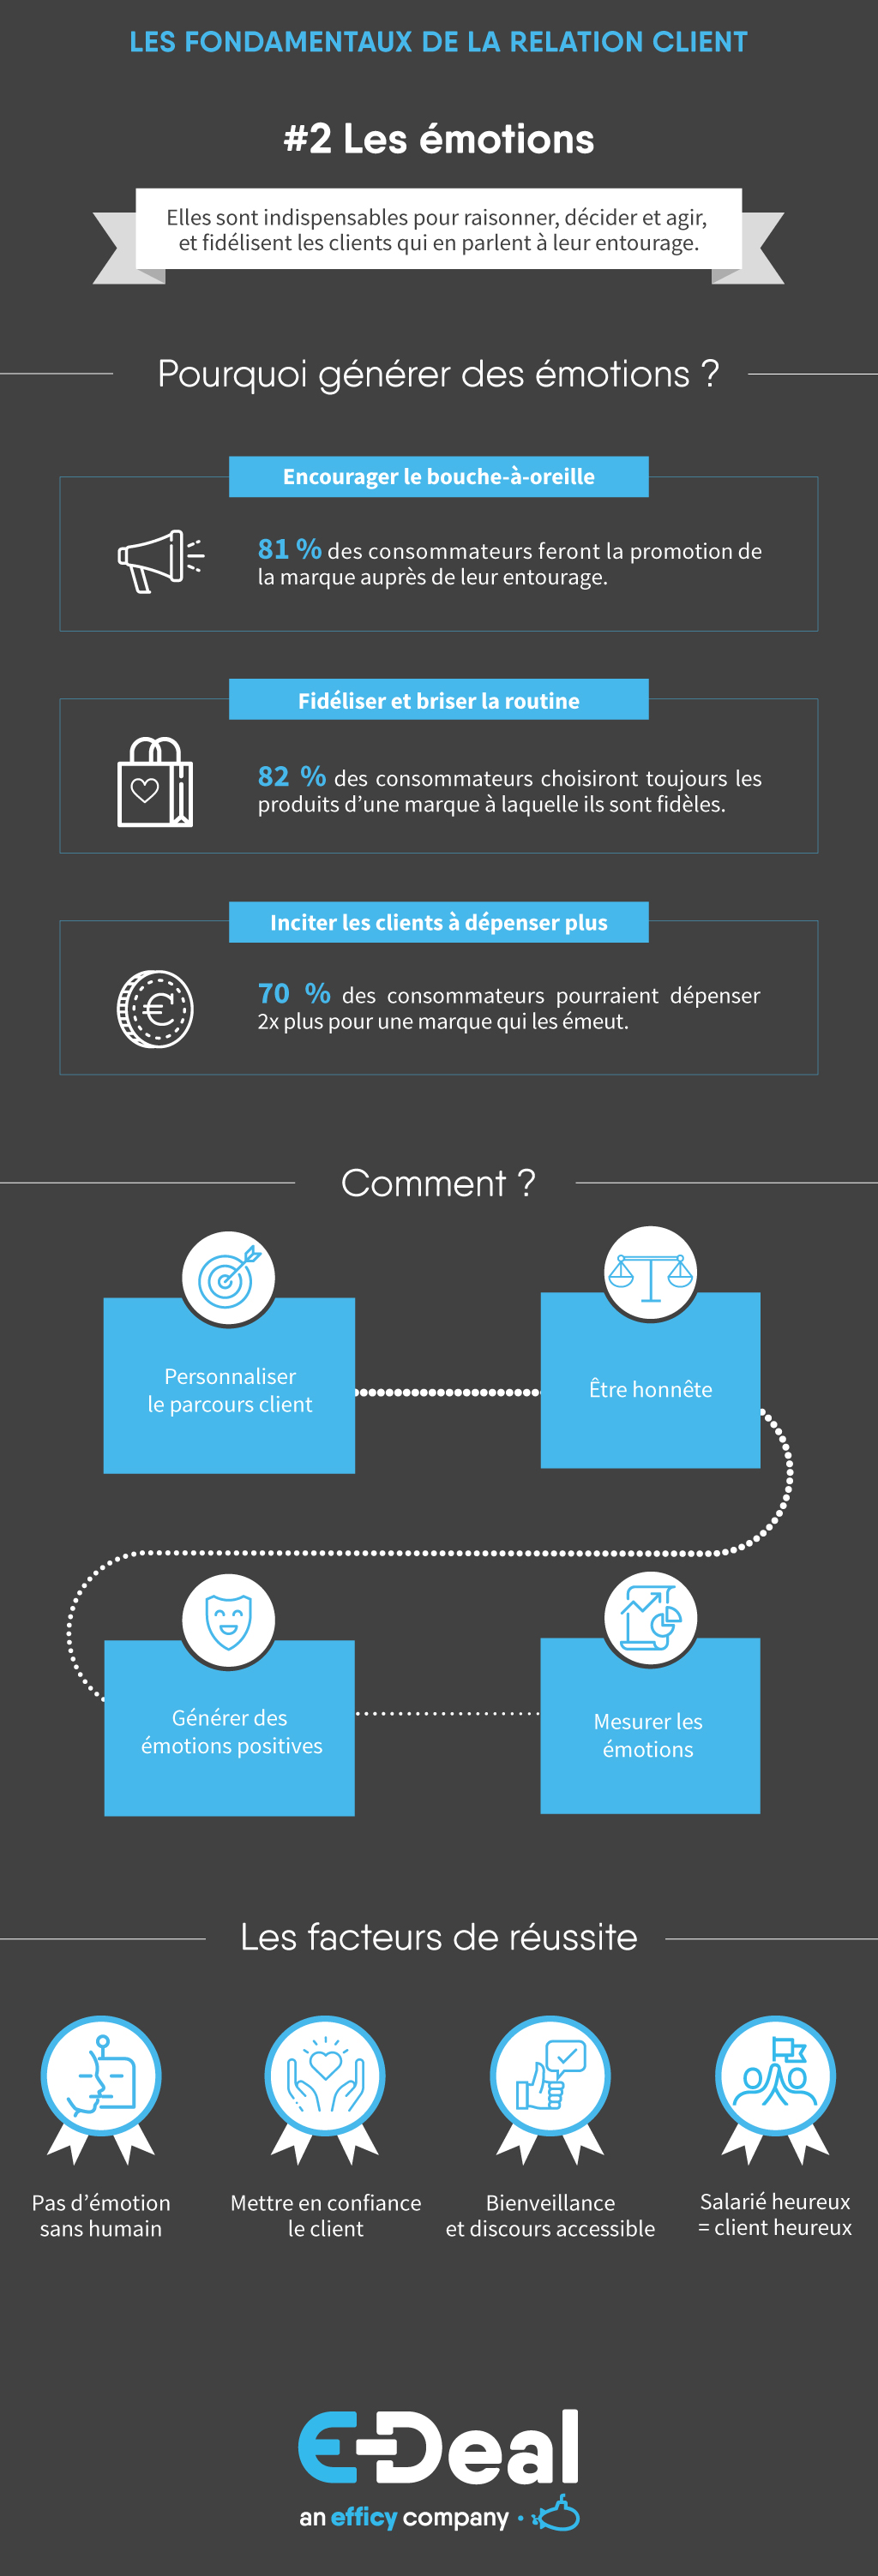 Infographie-Emotions-Relation-Client-EDeal